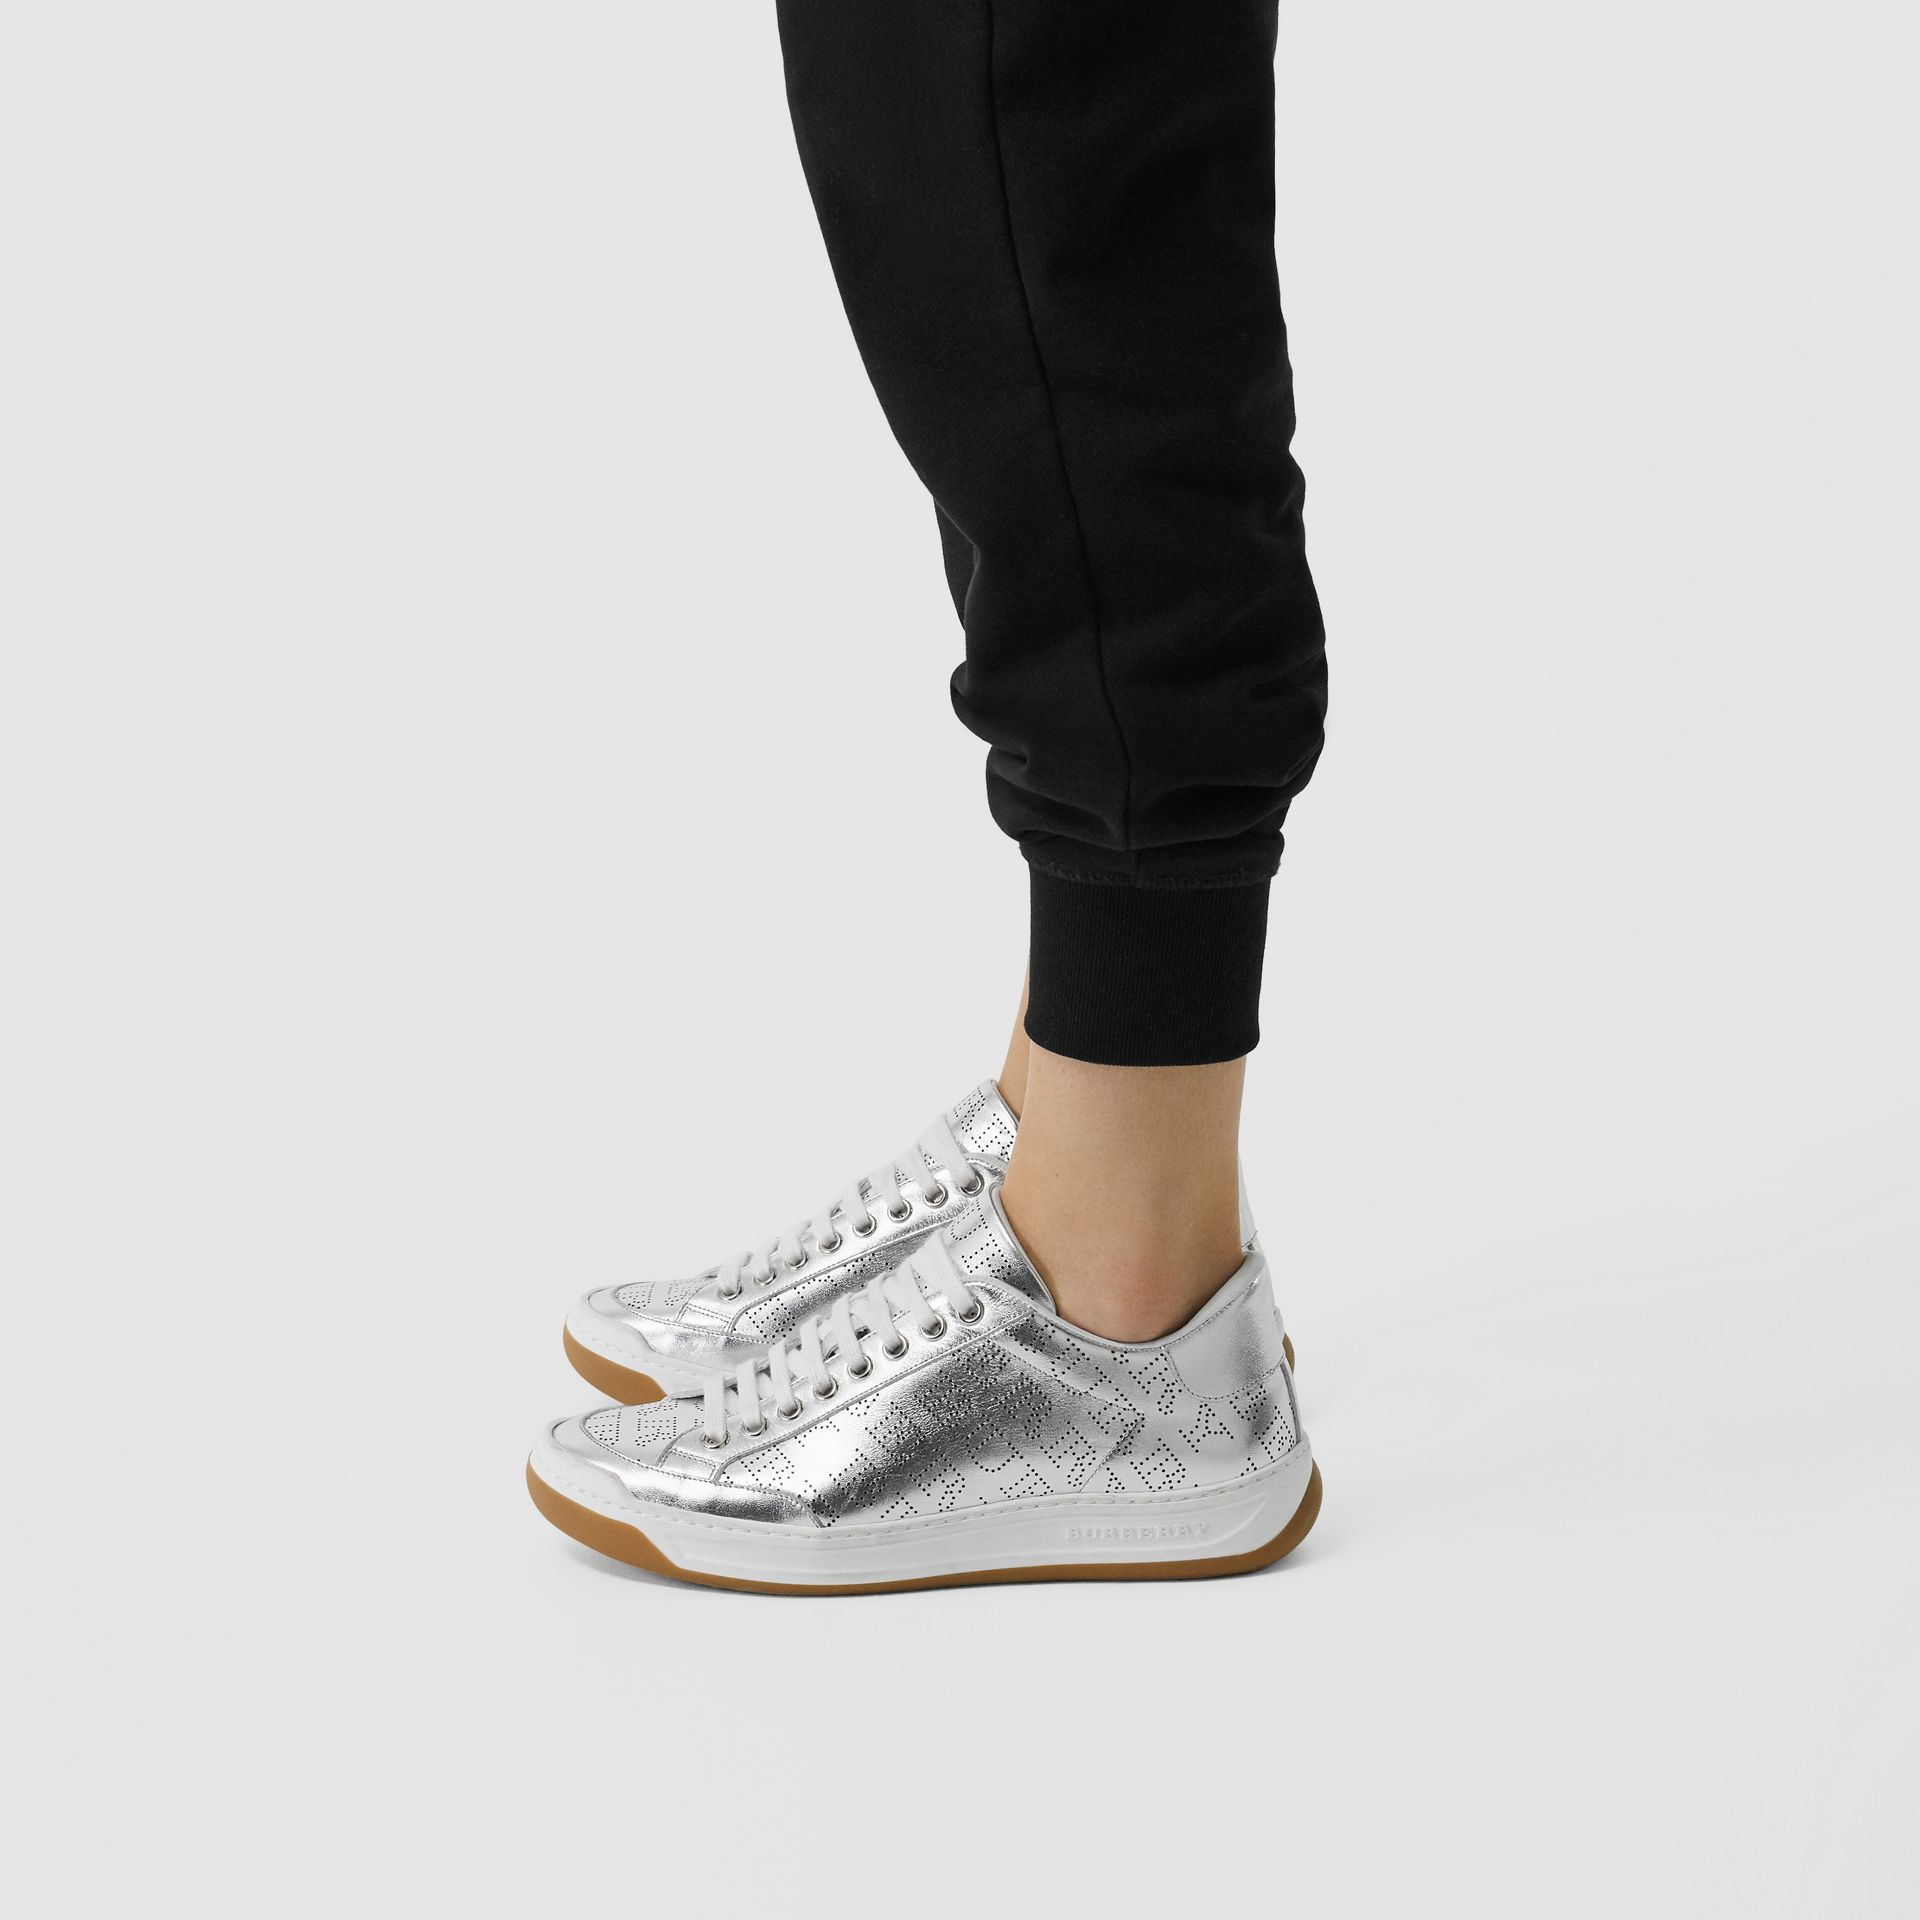 Perforated Logo Metallic Leather Sneakers in Silver Grey - Women | Burberry United States - gallery image 2